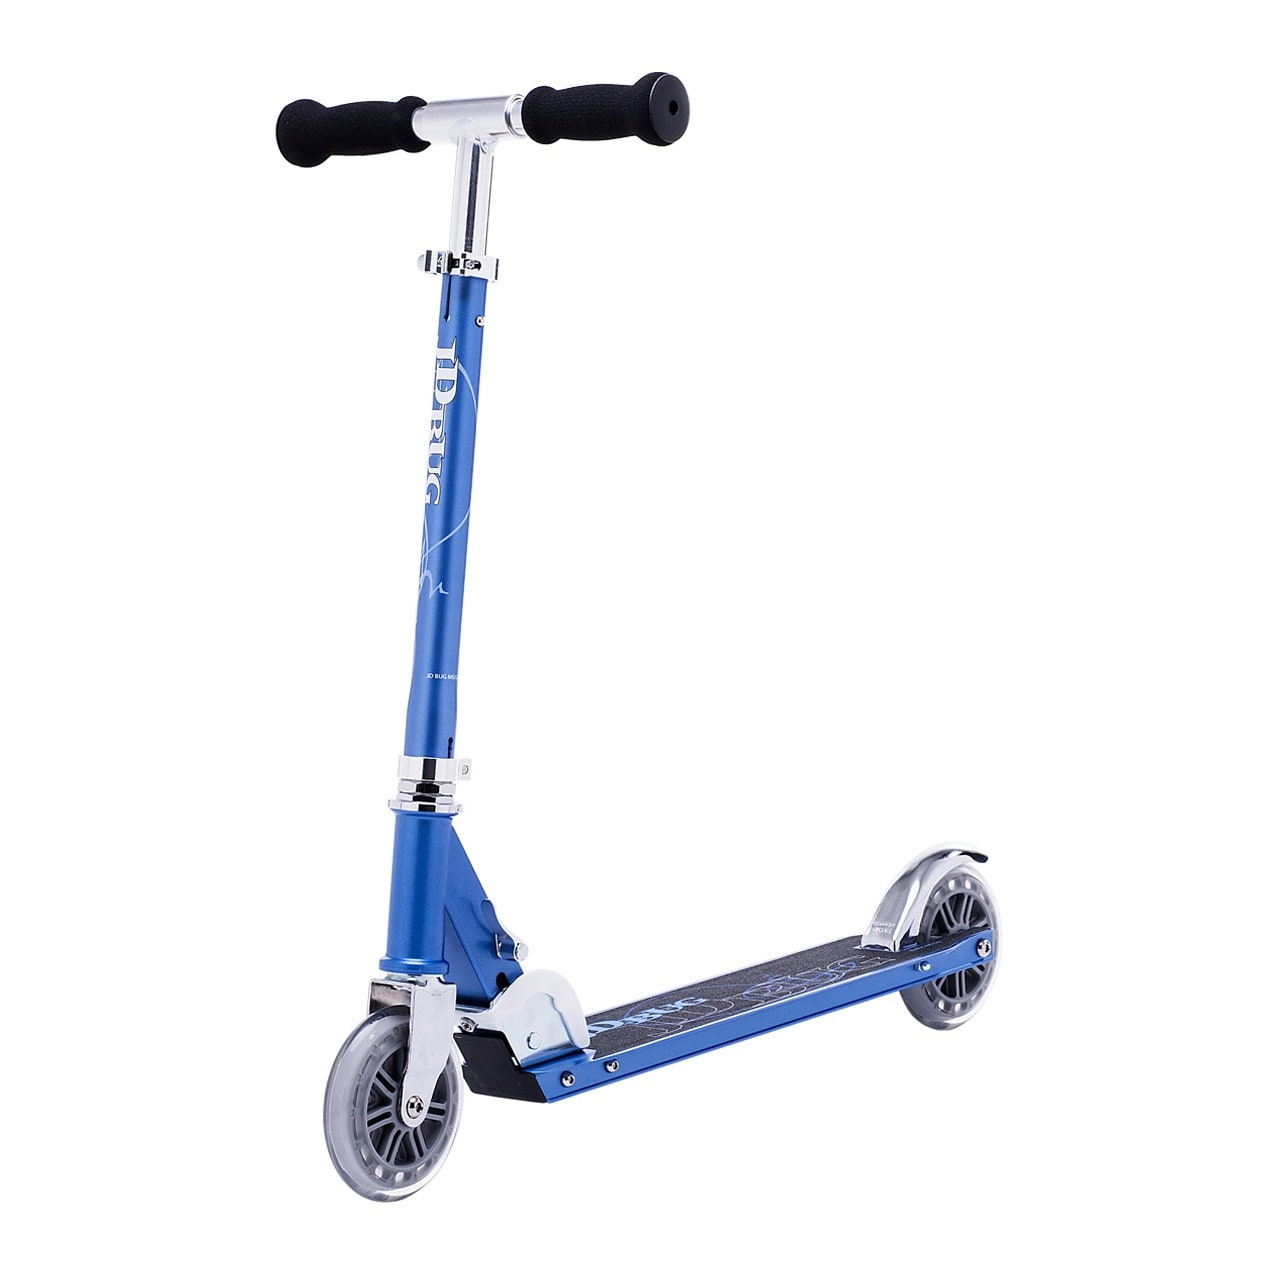 JD Bug Classic Street 120 Folding Scooter  Reflex Blue